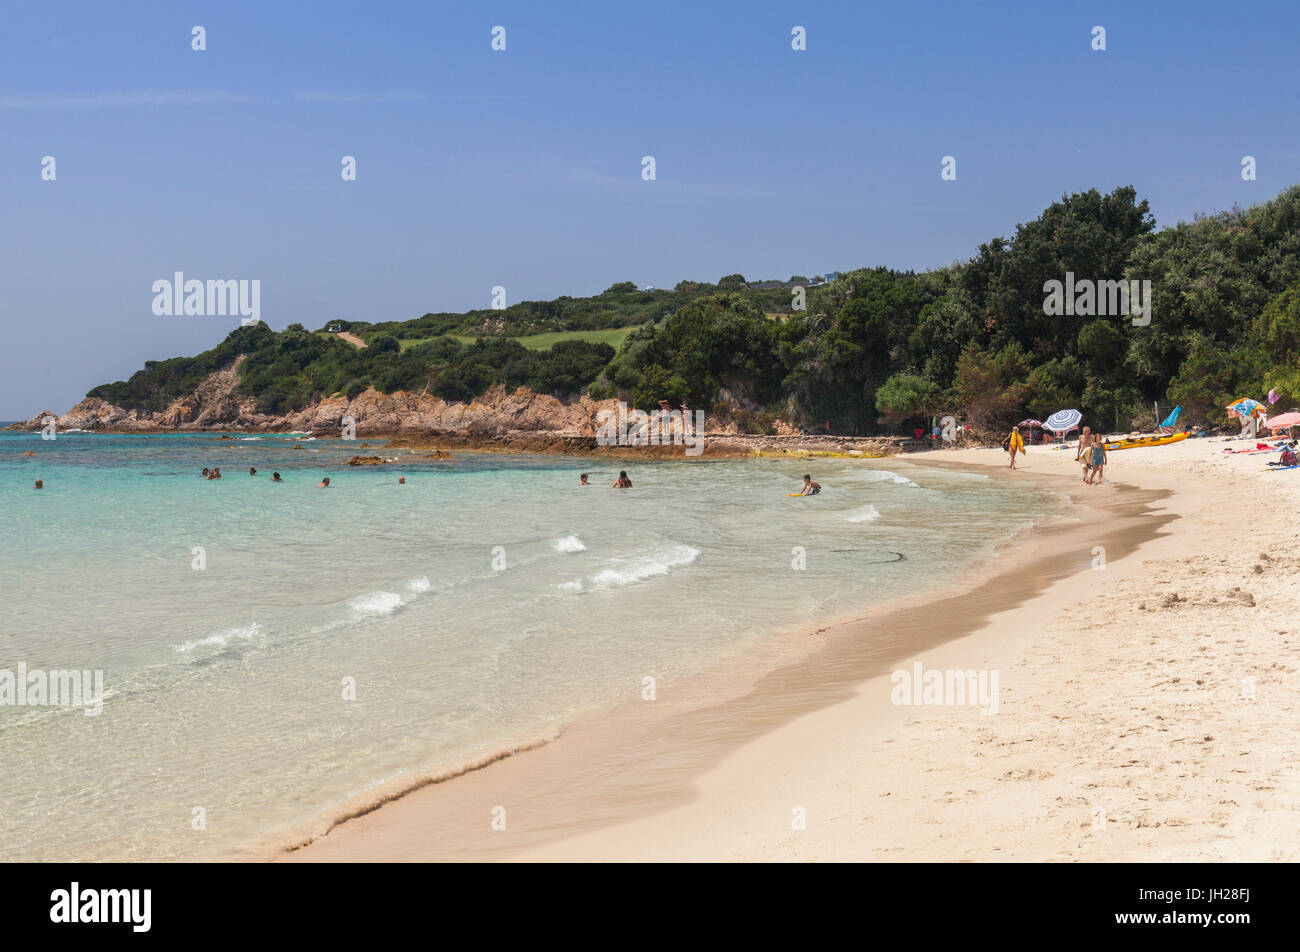 Bathers On Sandy Beach Surrounded By Turquoise Sea And Golf Course Sperone Bonifacio South Corsica France Mediterranean